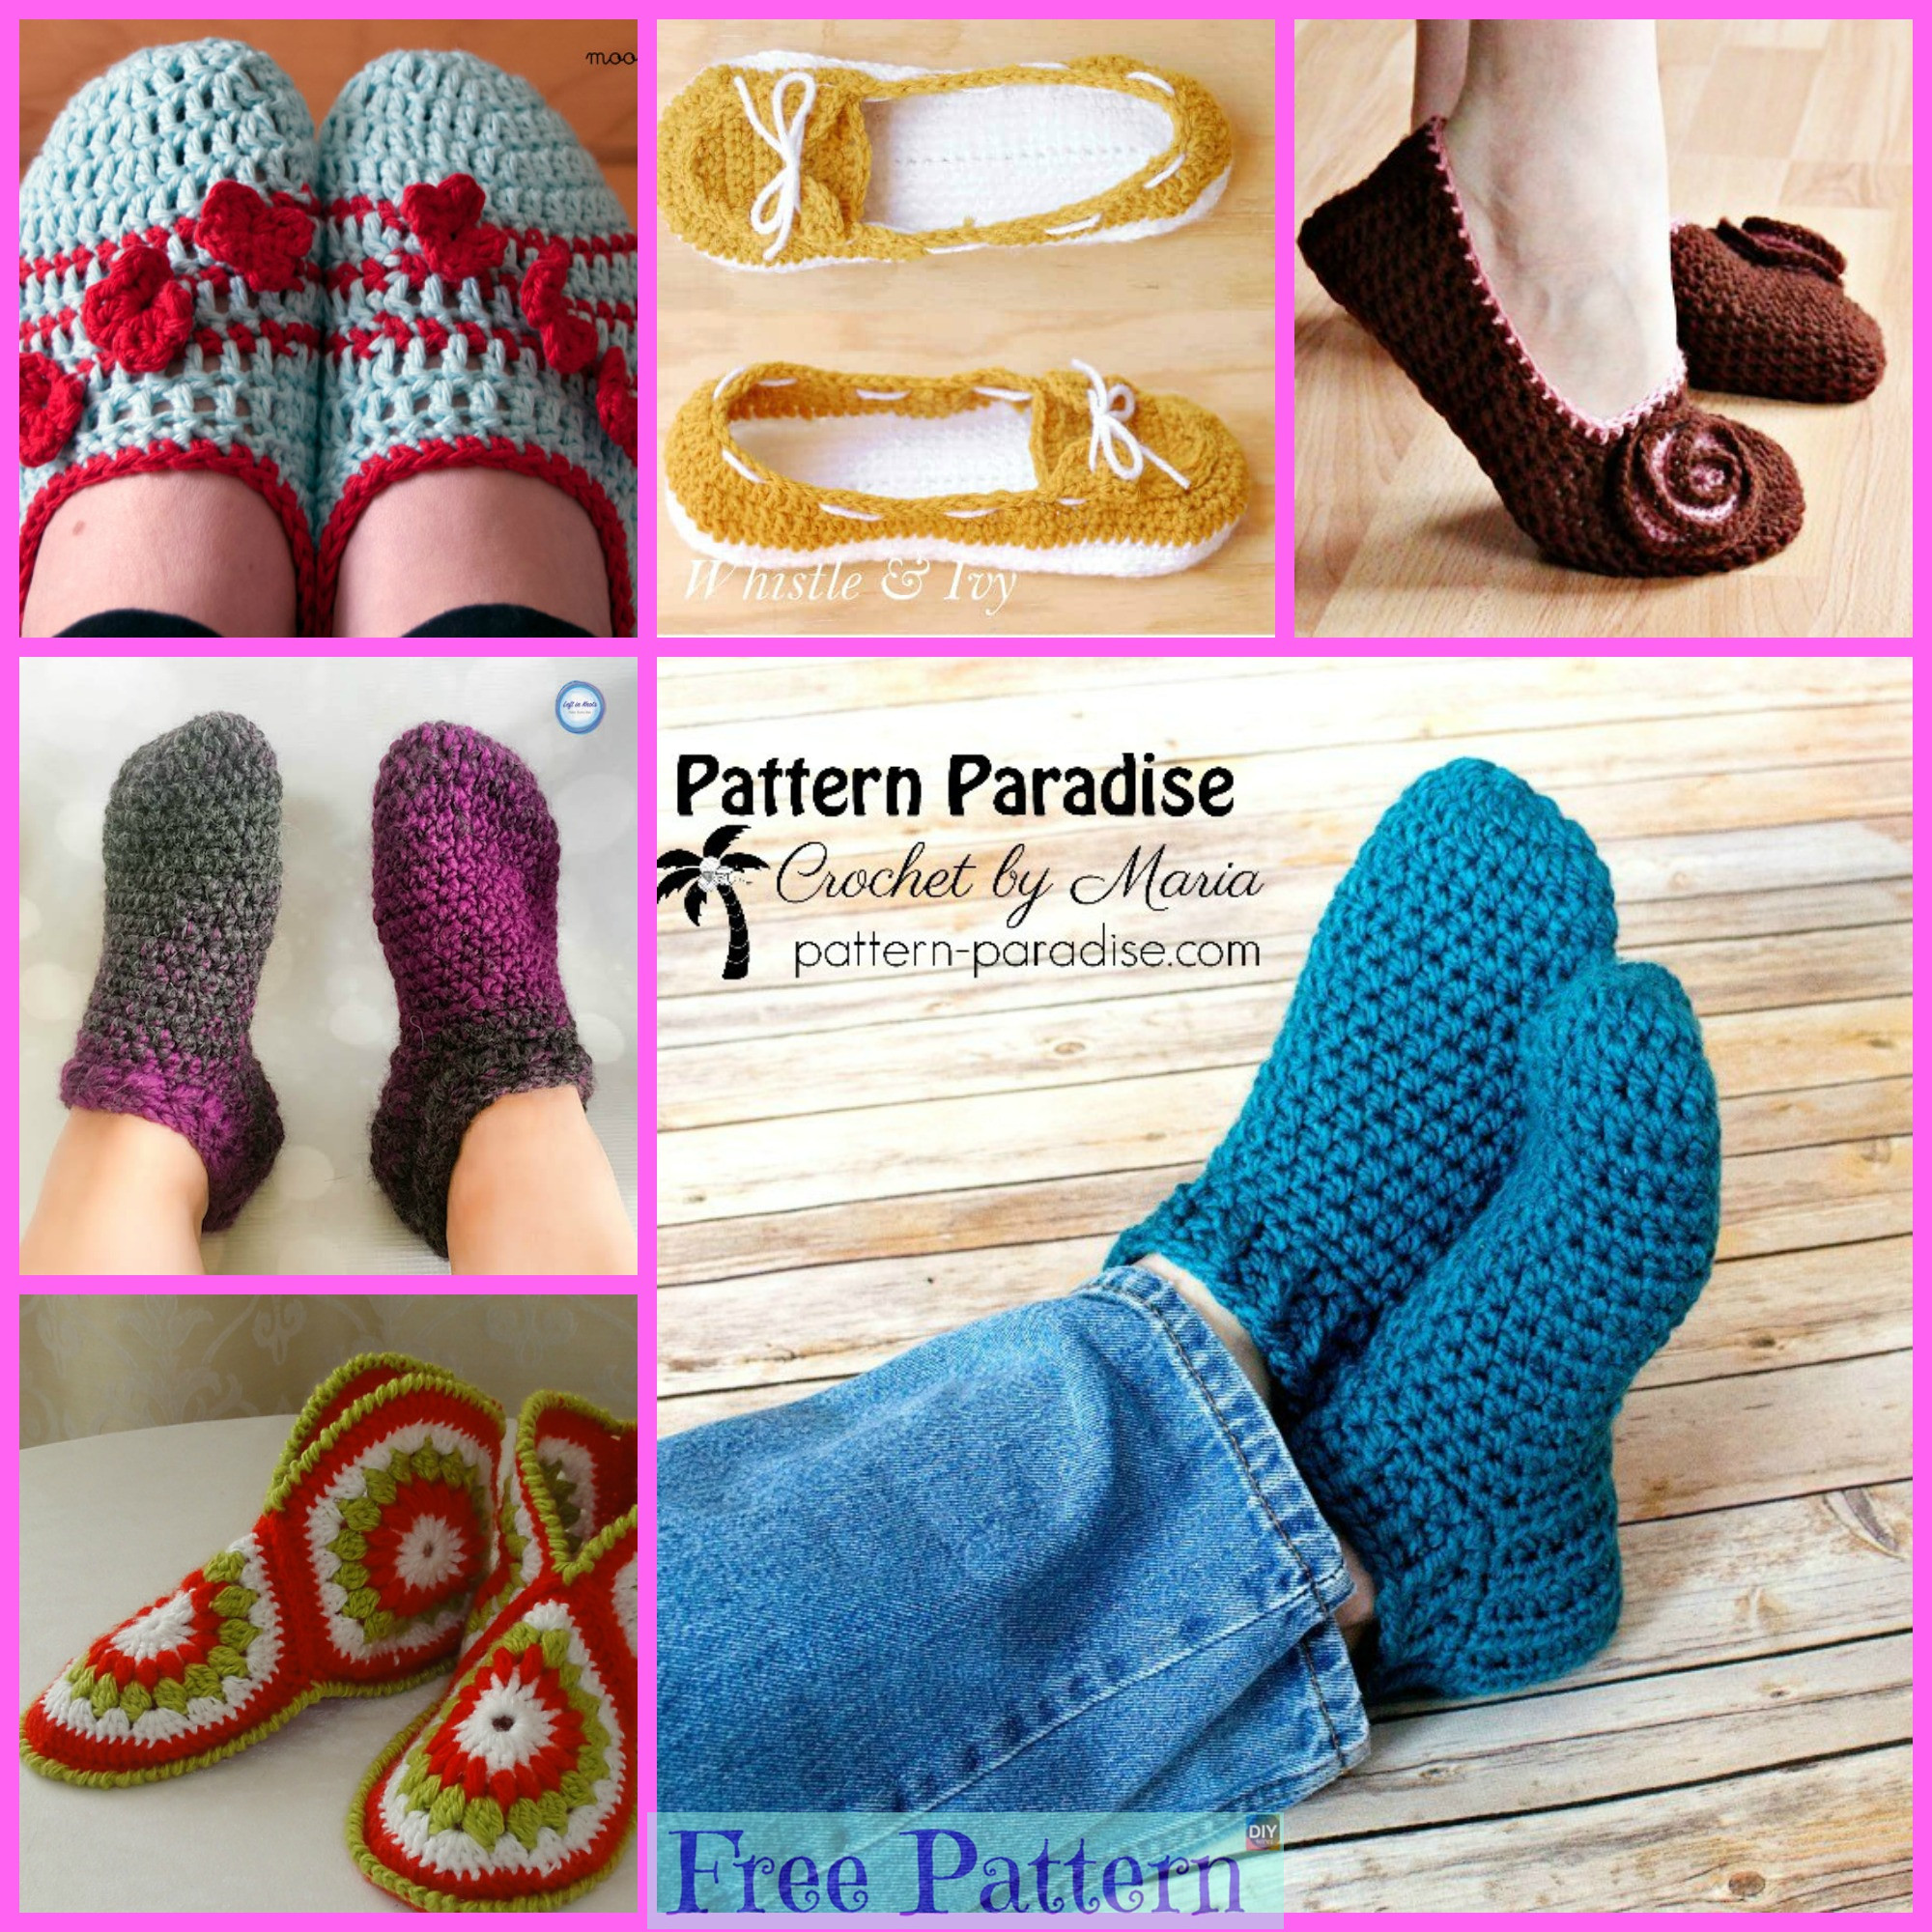 diy4ever-Cozy Crocheted Slippers - Free Pattern